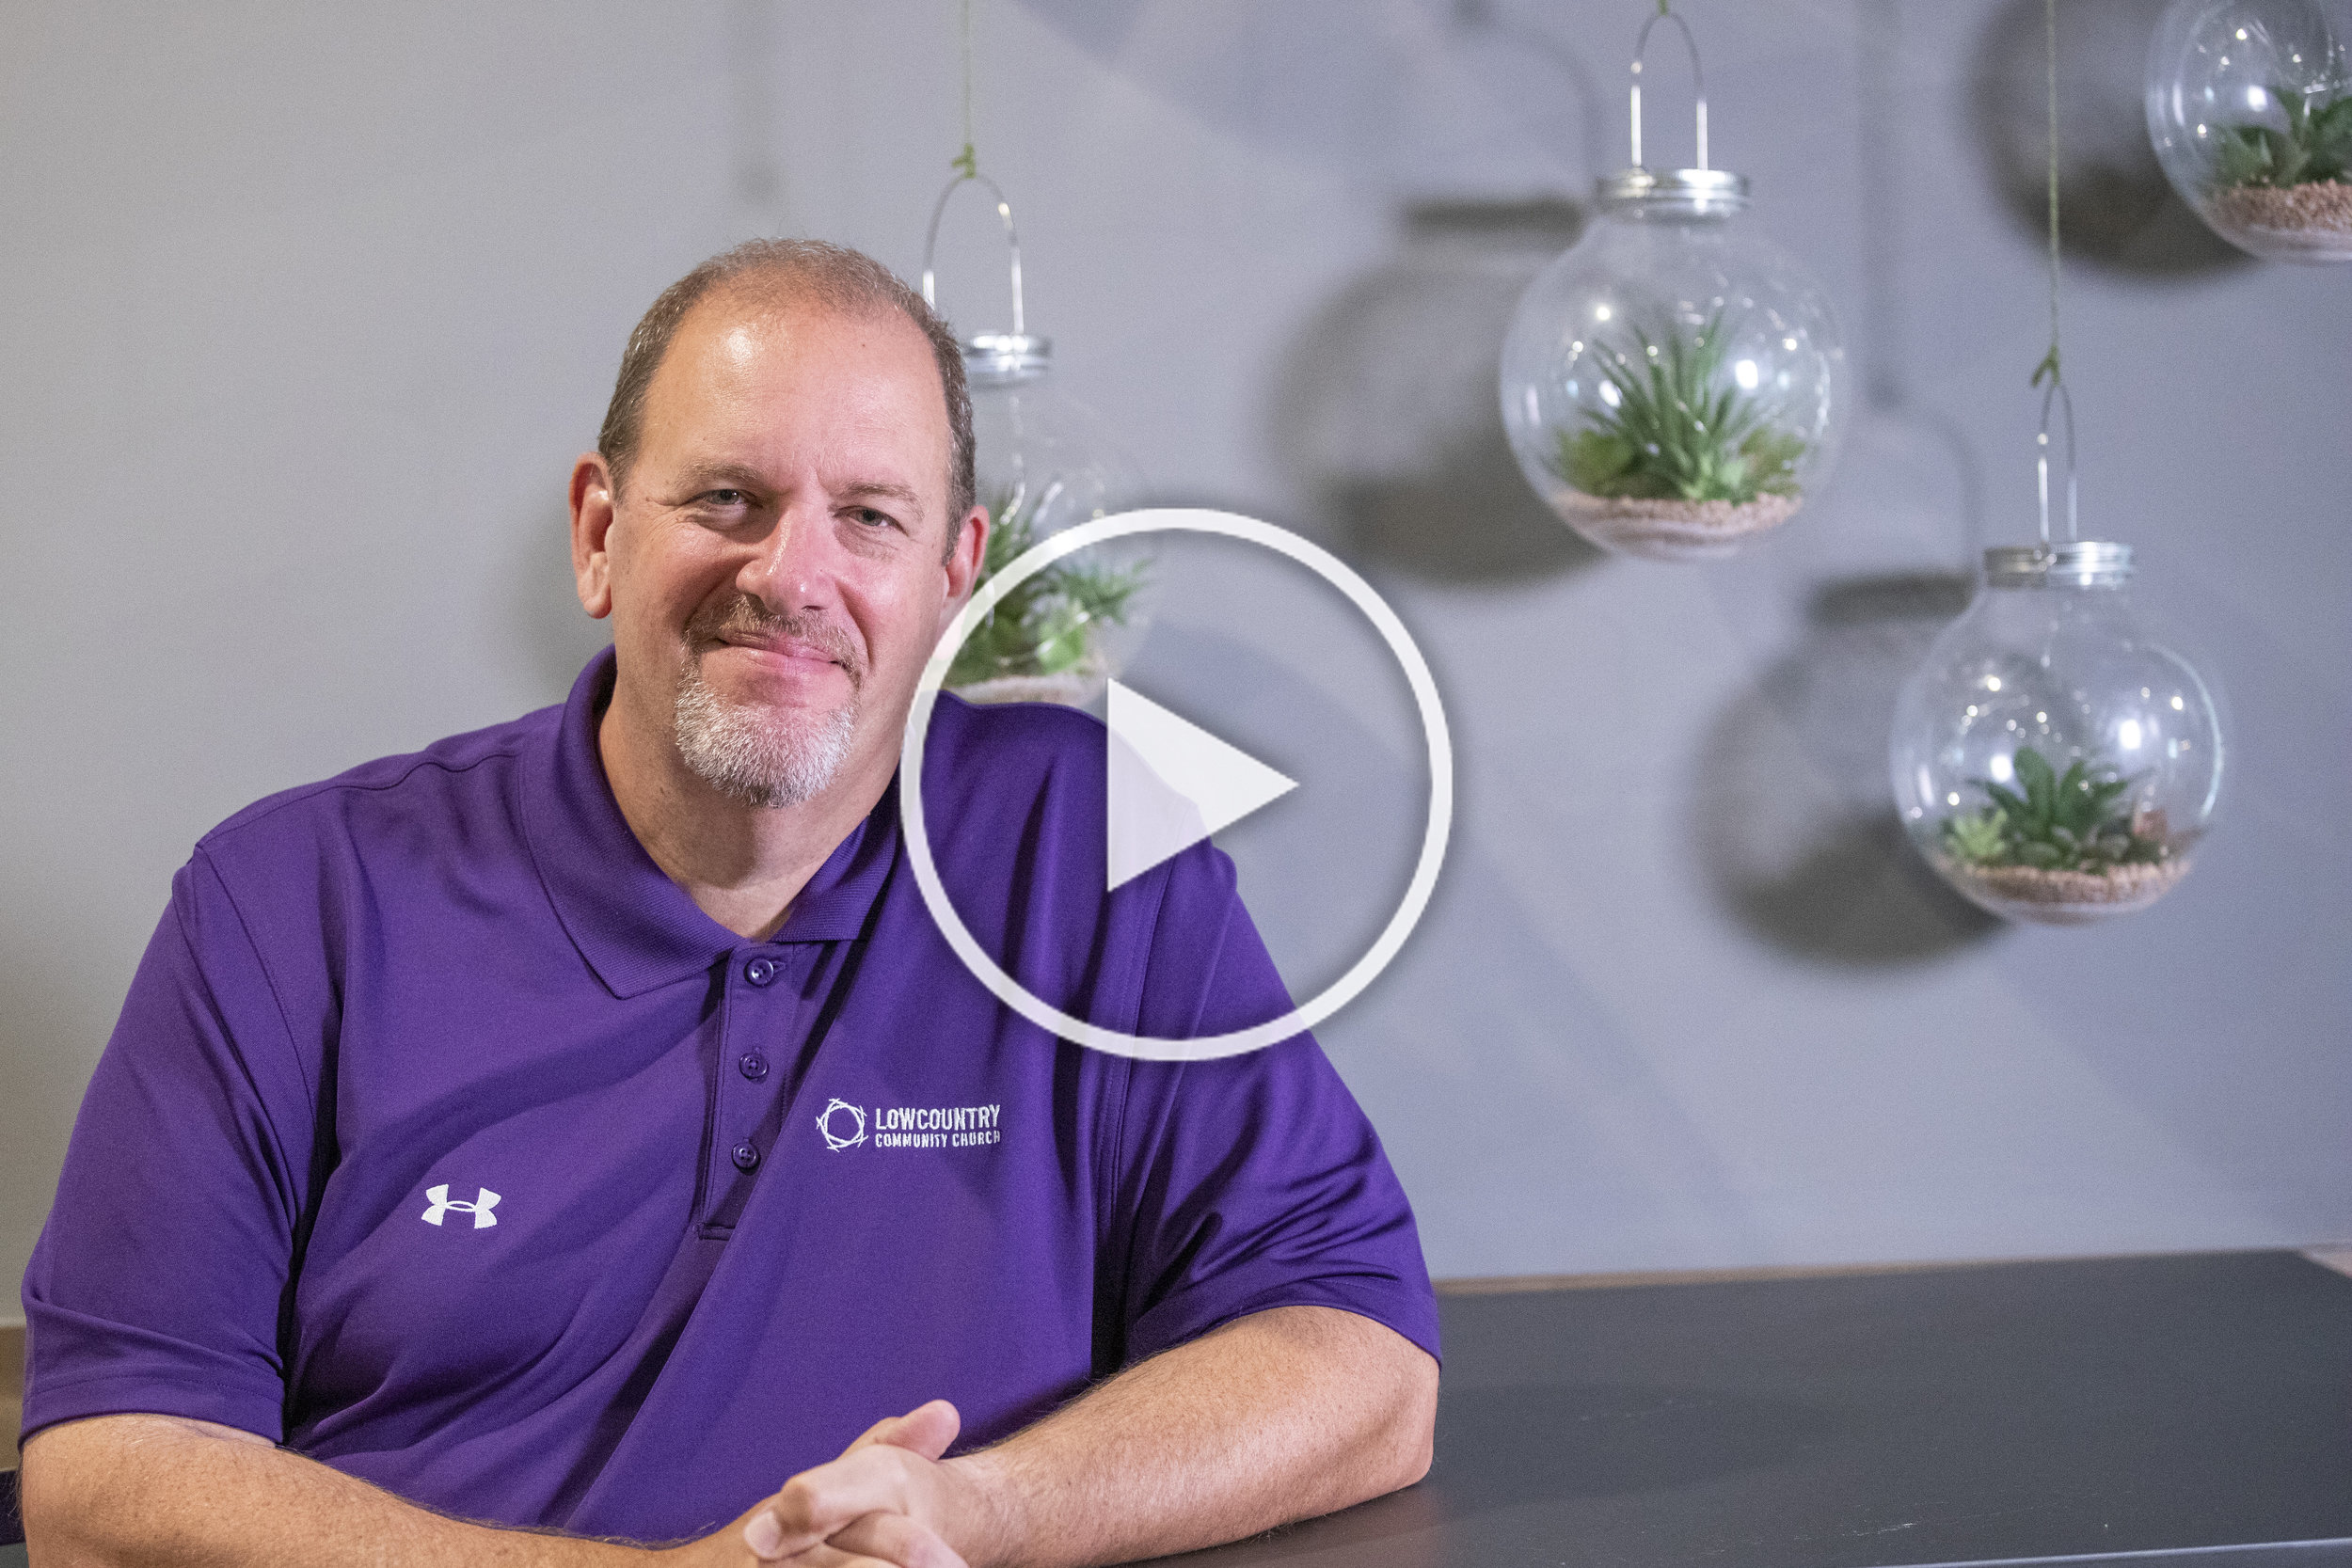 Caring For Our Neighbors With Special Needs. Watch a Conversation With Pastor Jeff Cranston.